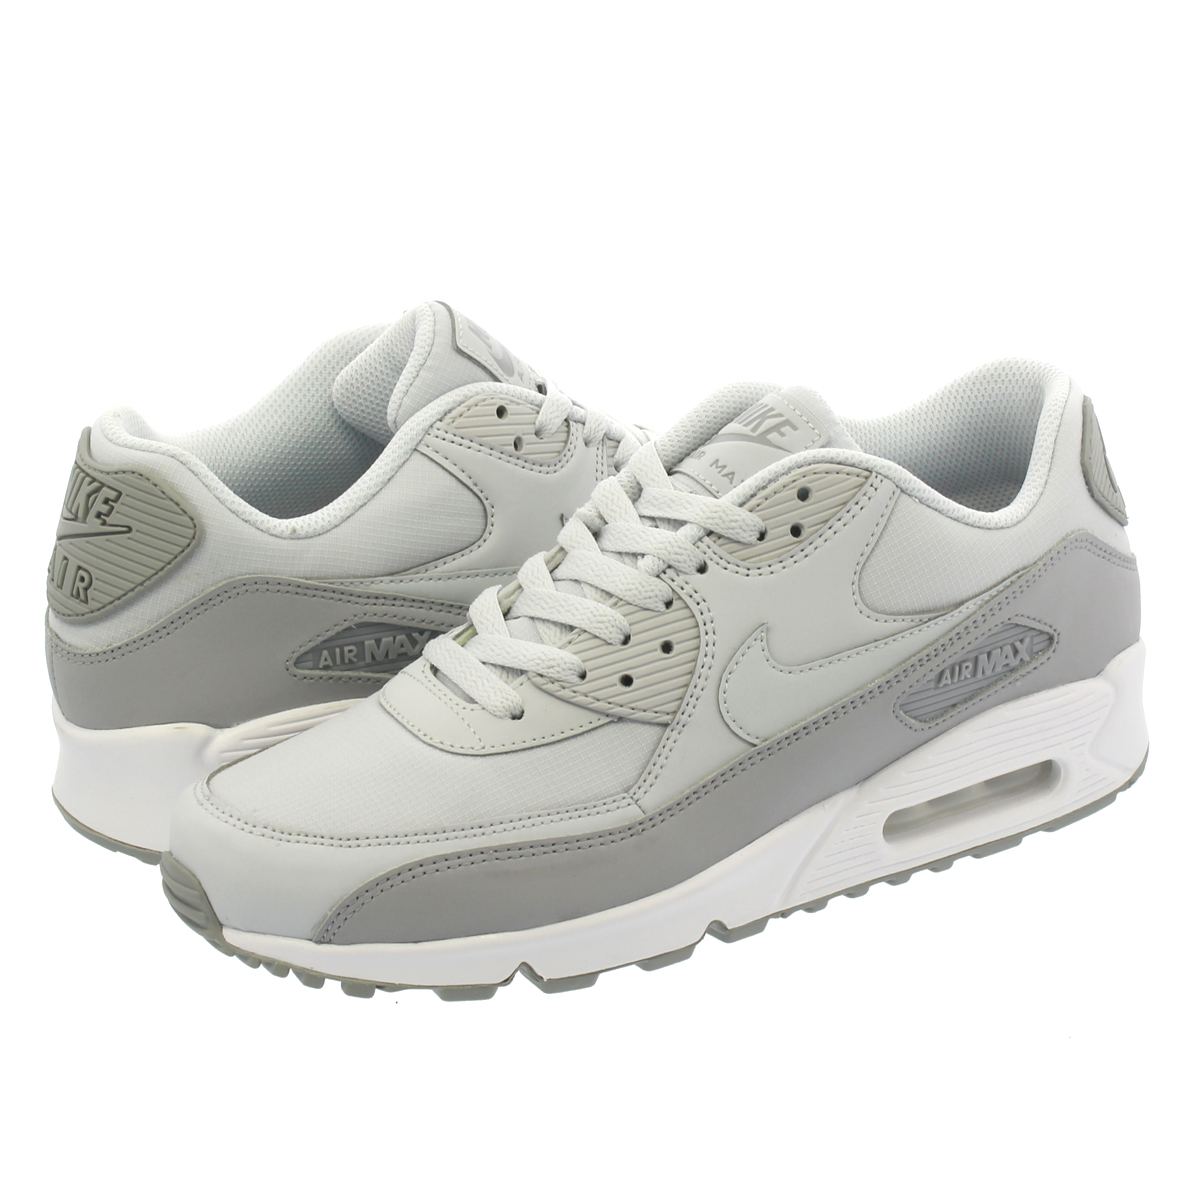 e674f192c9 ... black hot sale usa nike air max 90 essential kie ney amax 90 essential  wolf grey pure platinum white ...